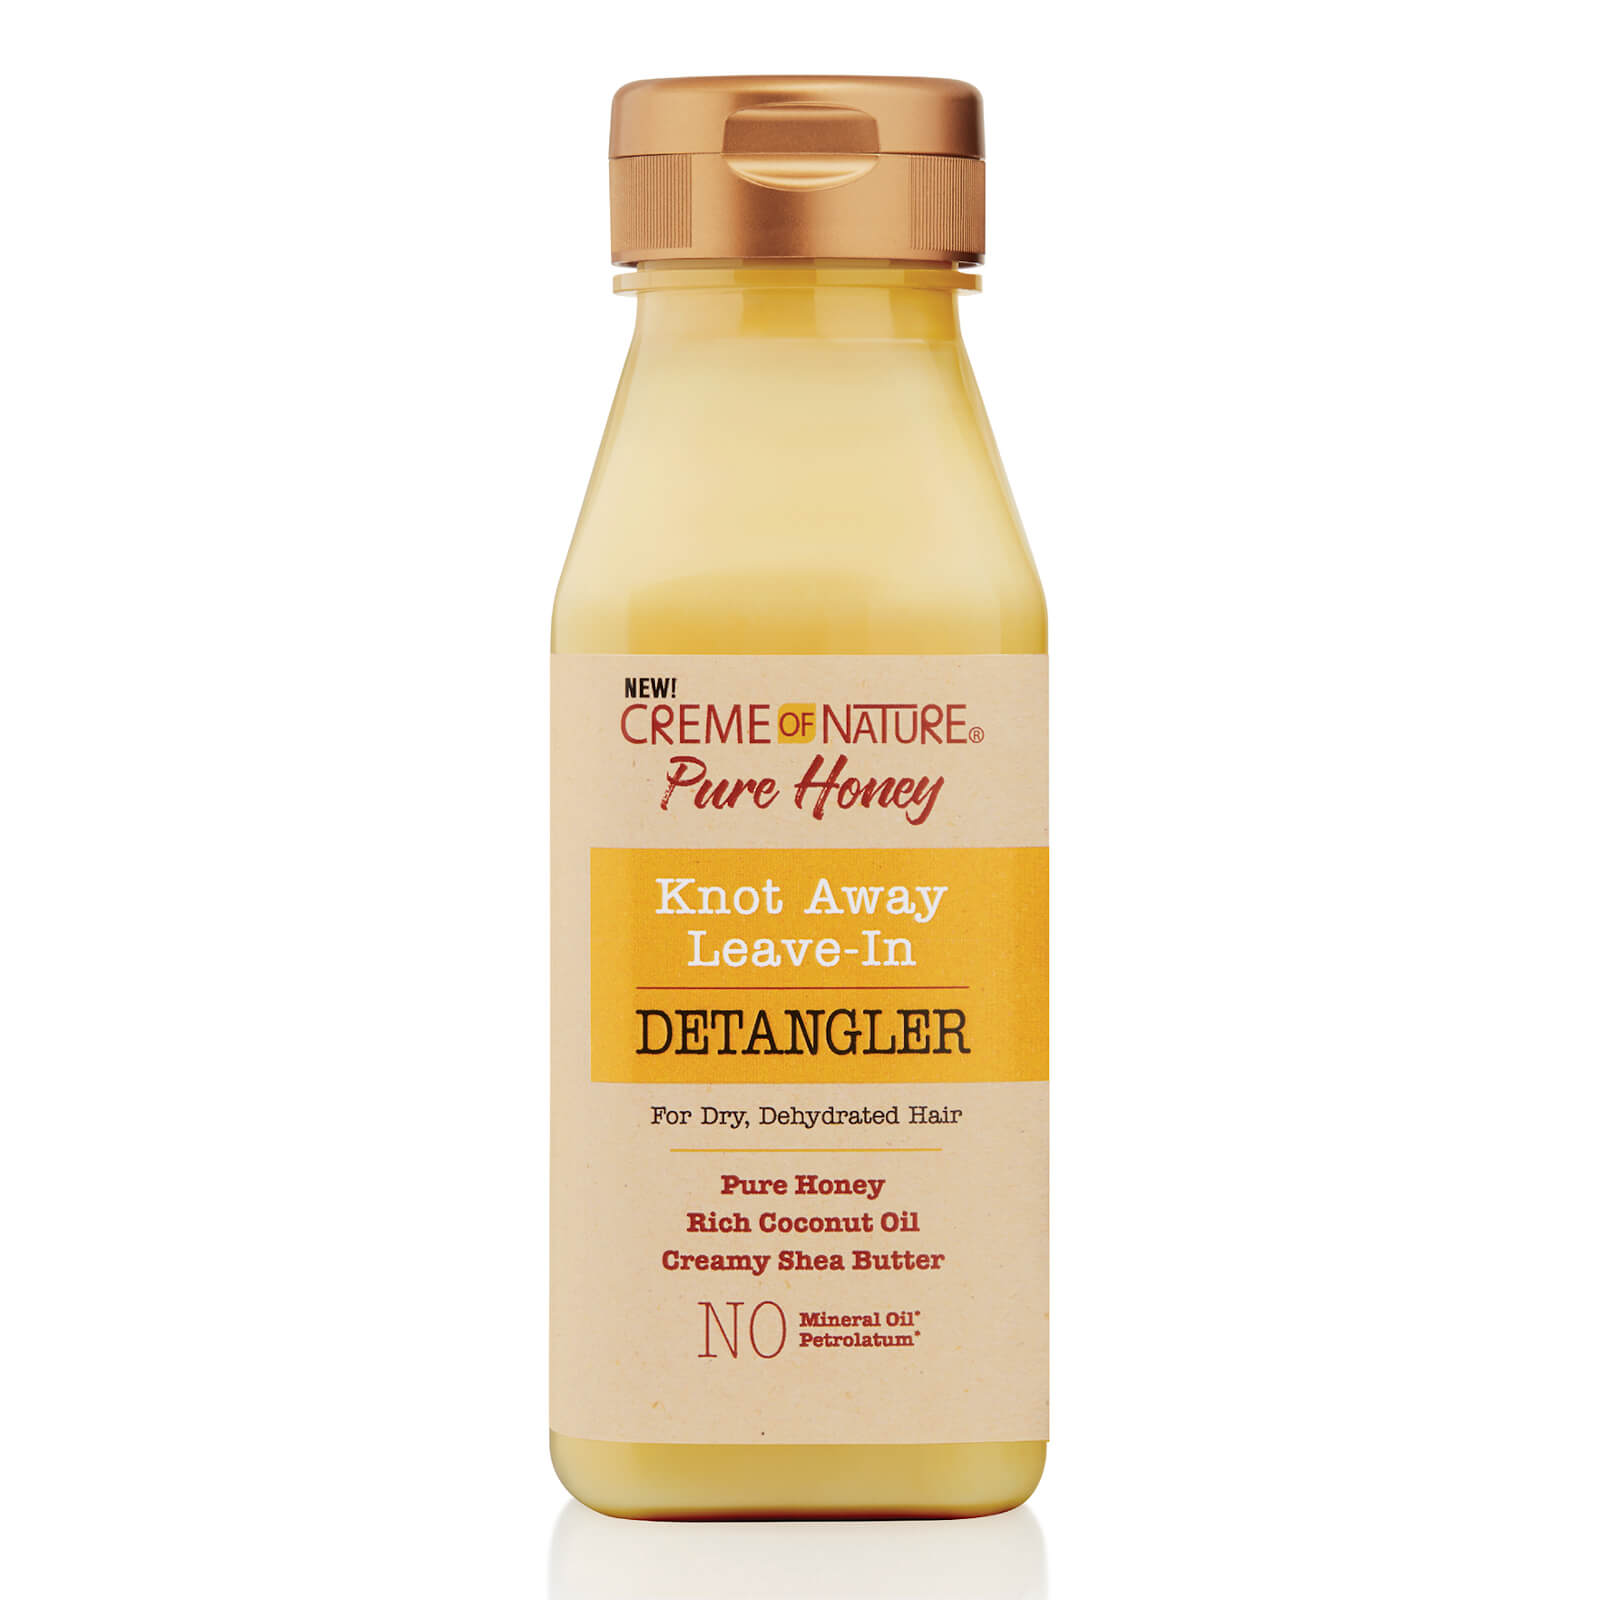 Crème of Nature Knot Away Leave-in Detangler 227ml